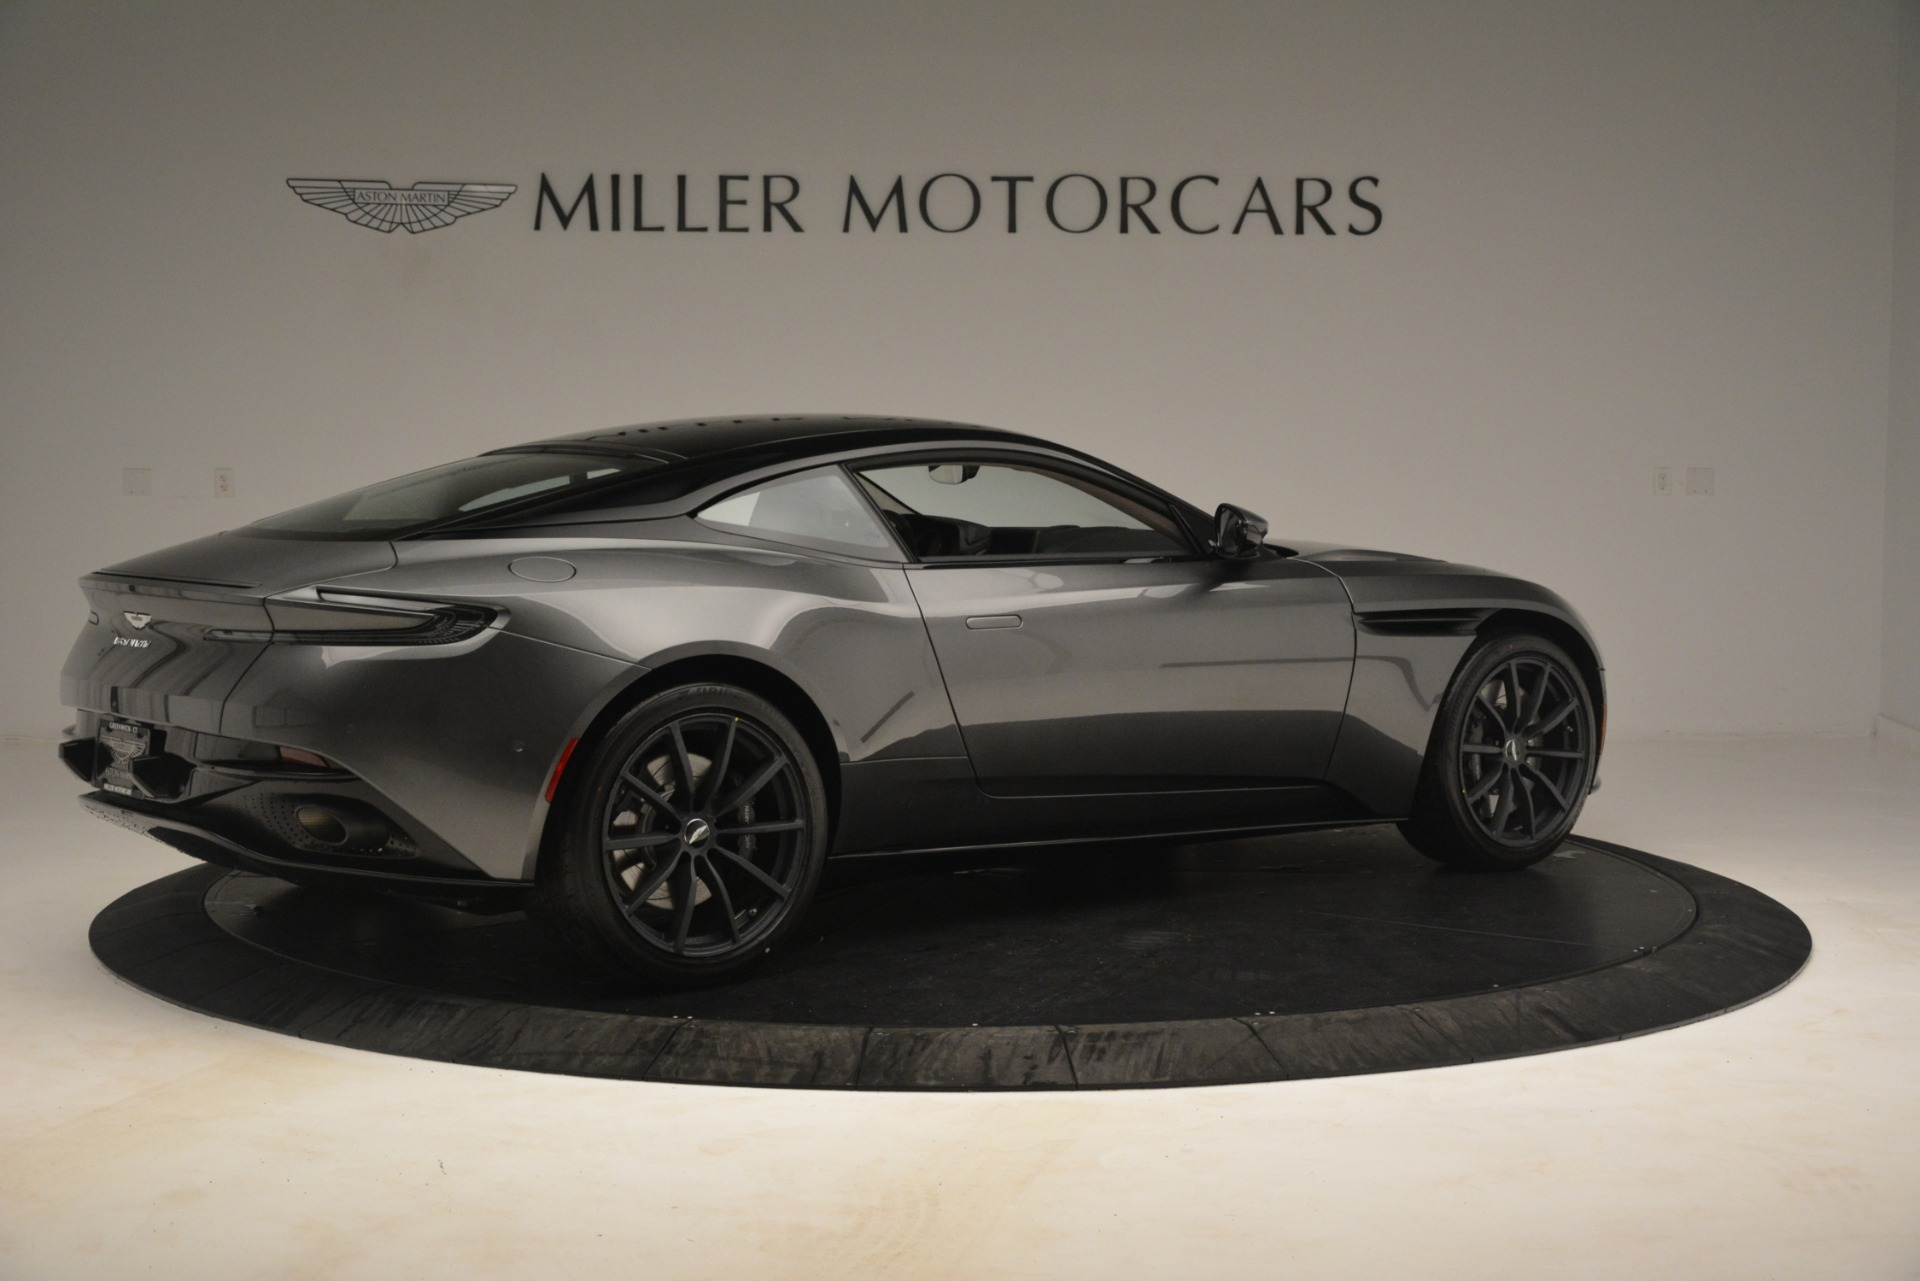 New 2019 Aston Martin DB11 V12 AMR Coupe For Sale In Greenwich, CT 3123_p8